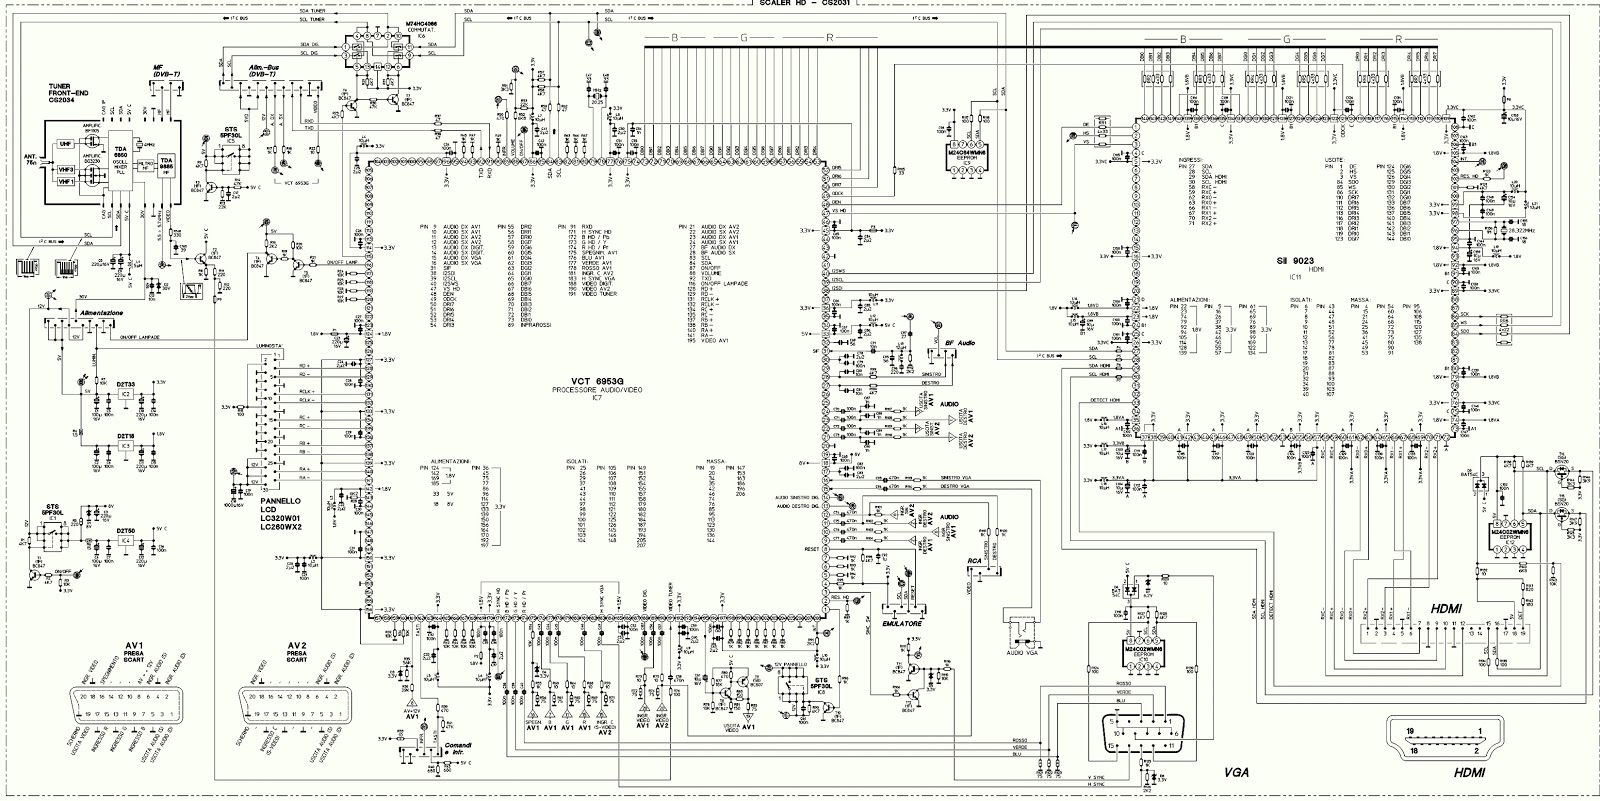 Mivar 32m1 And Mivar 26m2 Lcd Tv Schematic